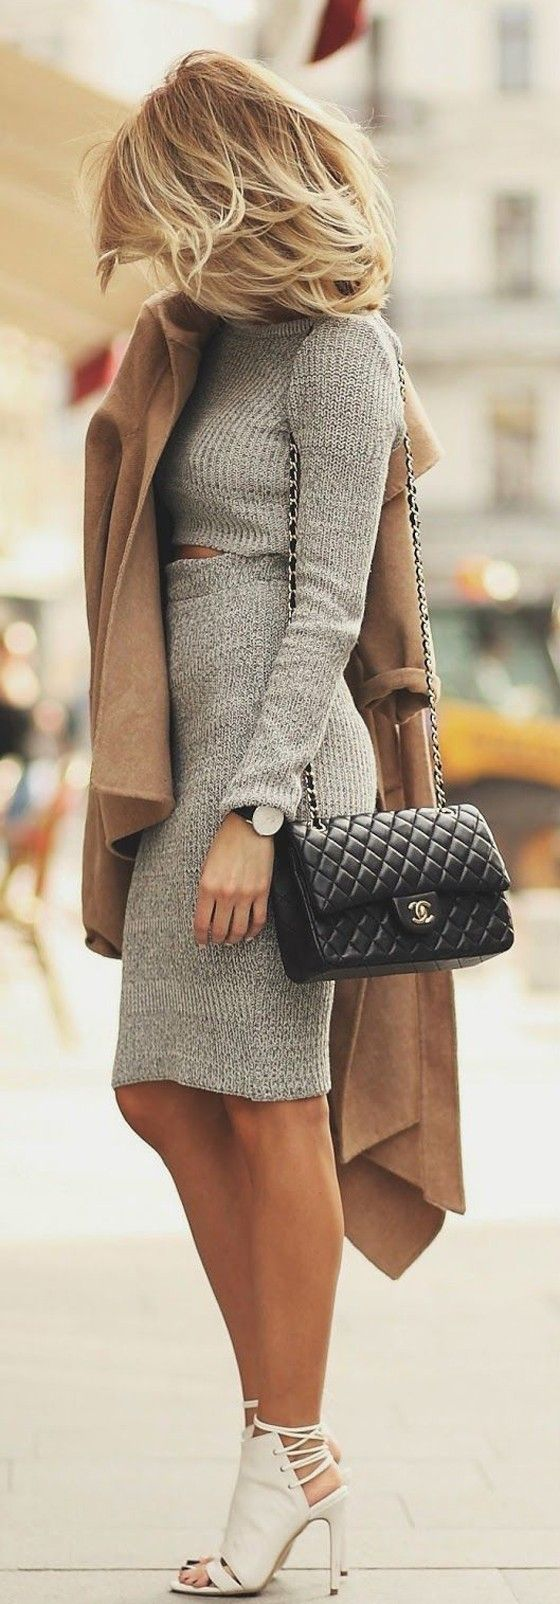 Best 25  Chanel sweater ideas on Pinterest | Chanel style, Define ...